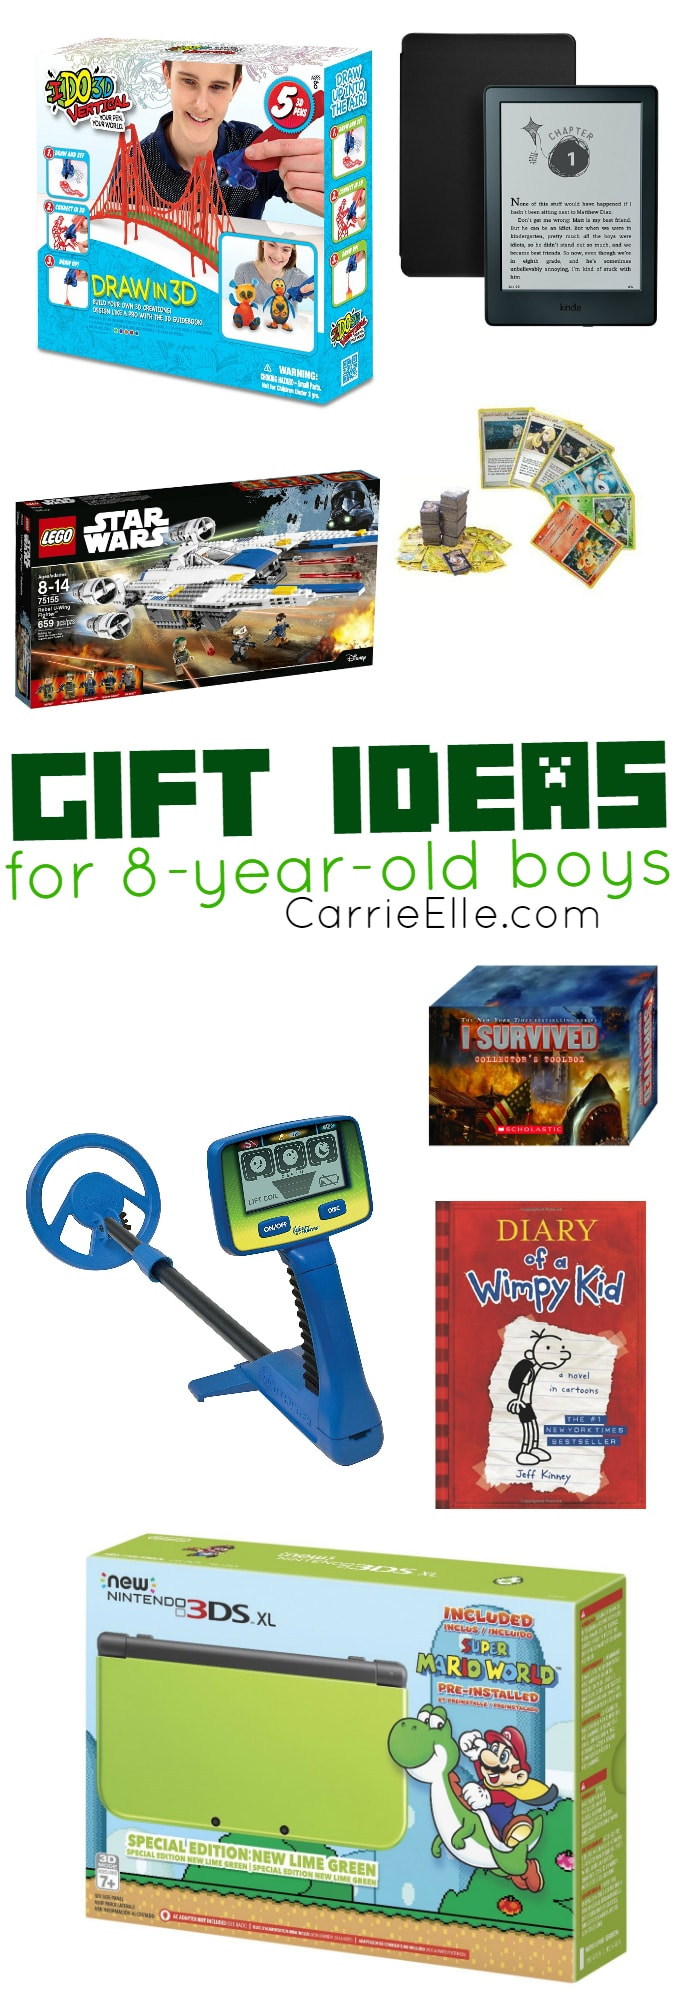 Gift Ideas for 8-Year-Old Boys